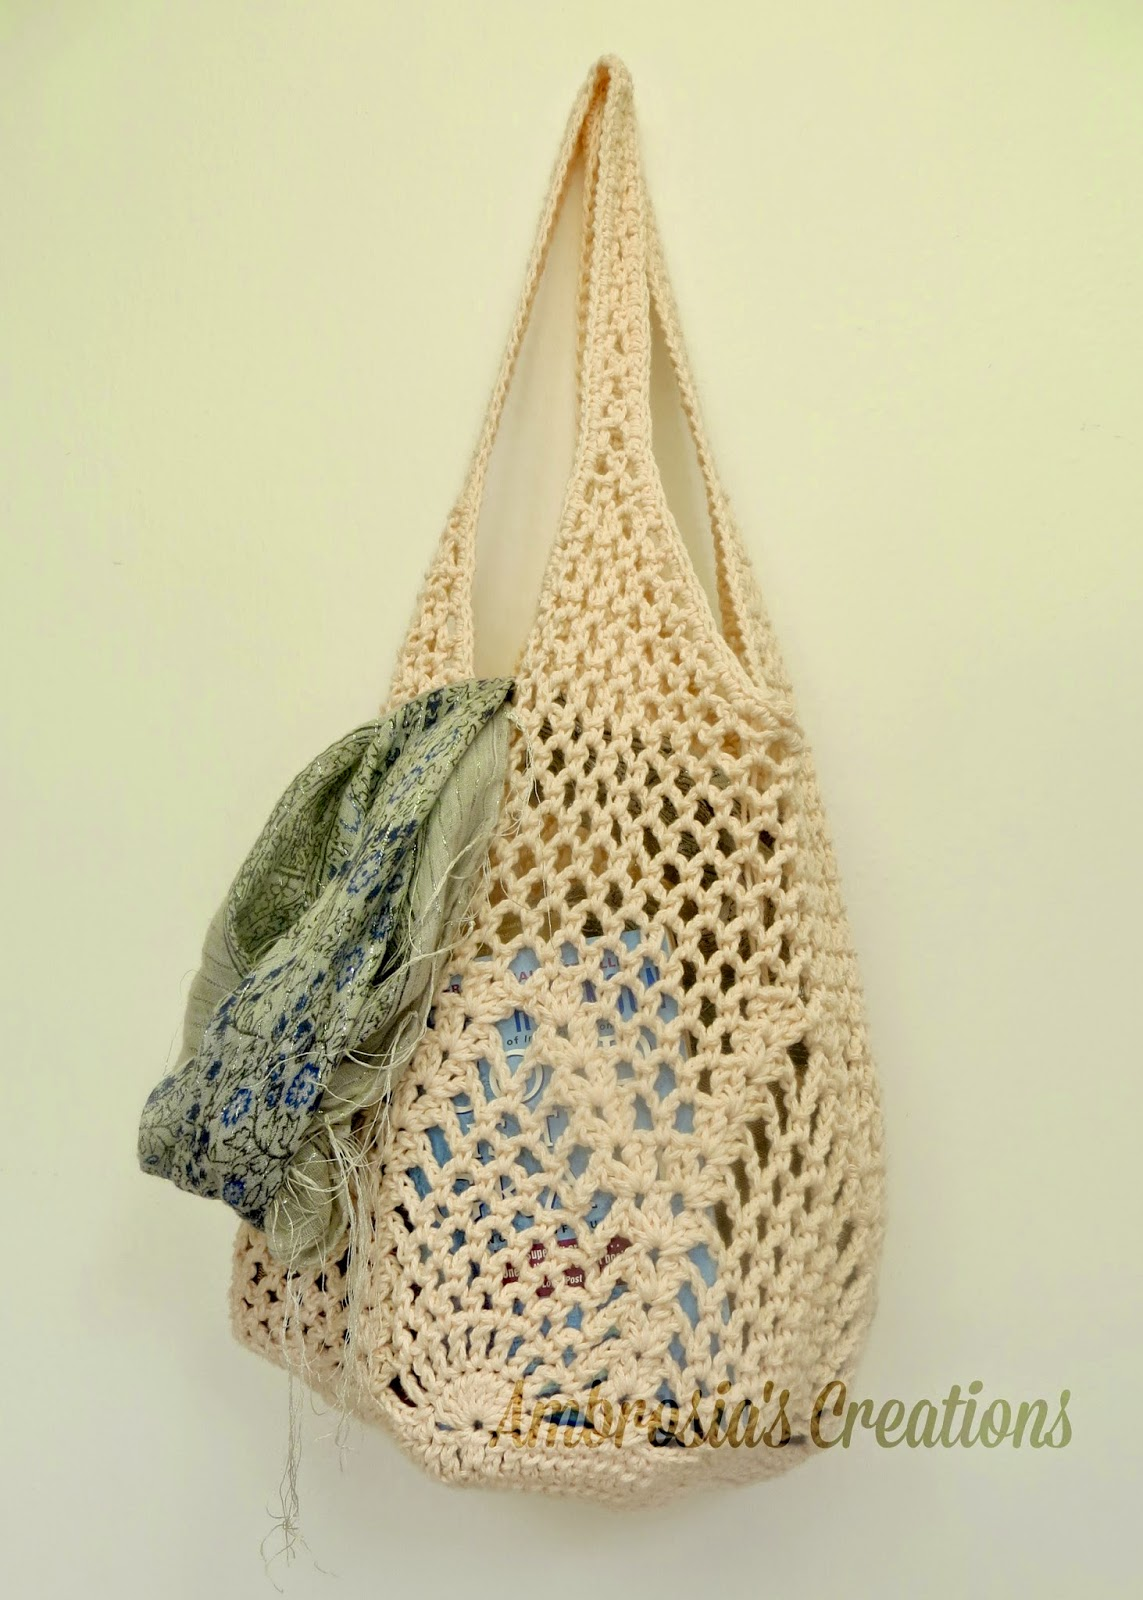 Crochet Net Bag Pattern Free : Ambrosias Creations: Pattern:: Pineapple Crochet Market ...